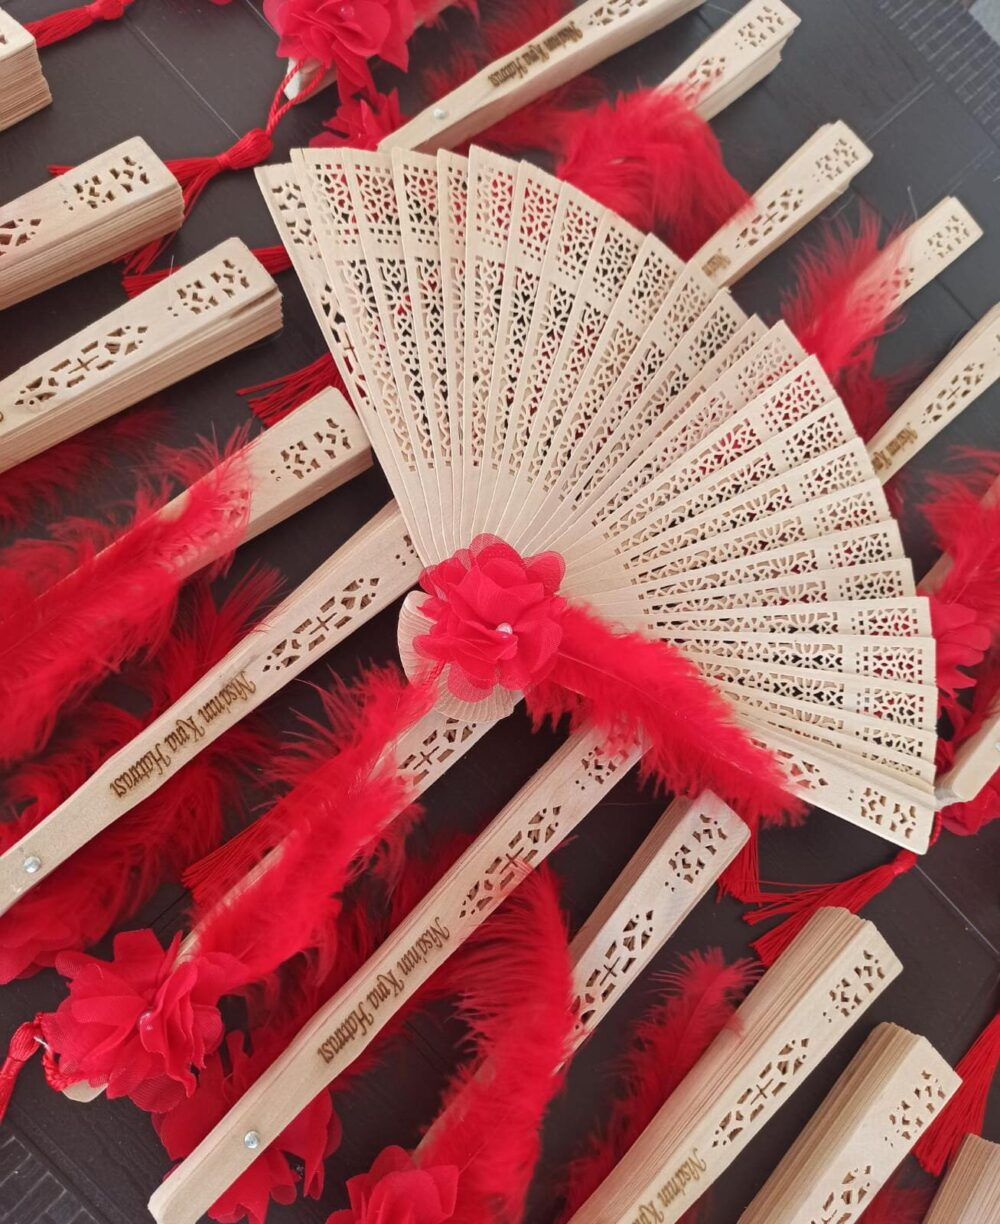 10 Pieces, Wooden Wedding Favor Fan, Natural Wood Fans, Hand Fan For Wedding Gift , Party Favor, Personalized Engraved Text